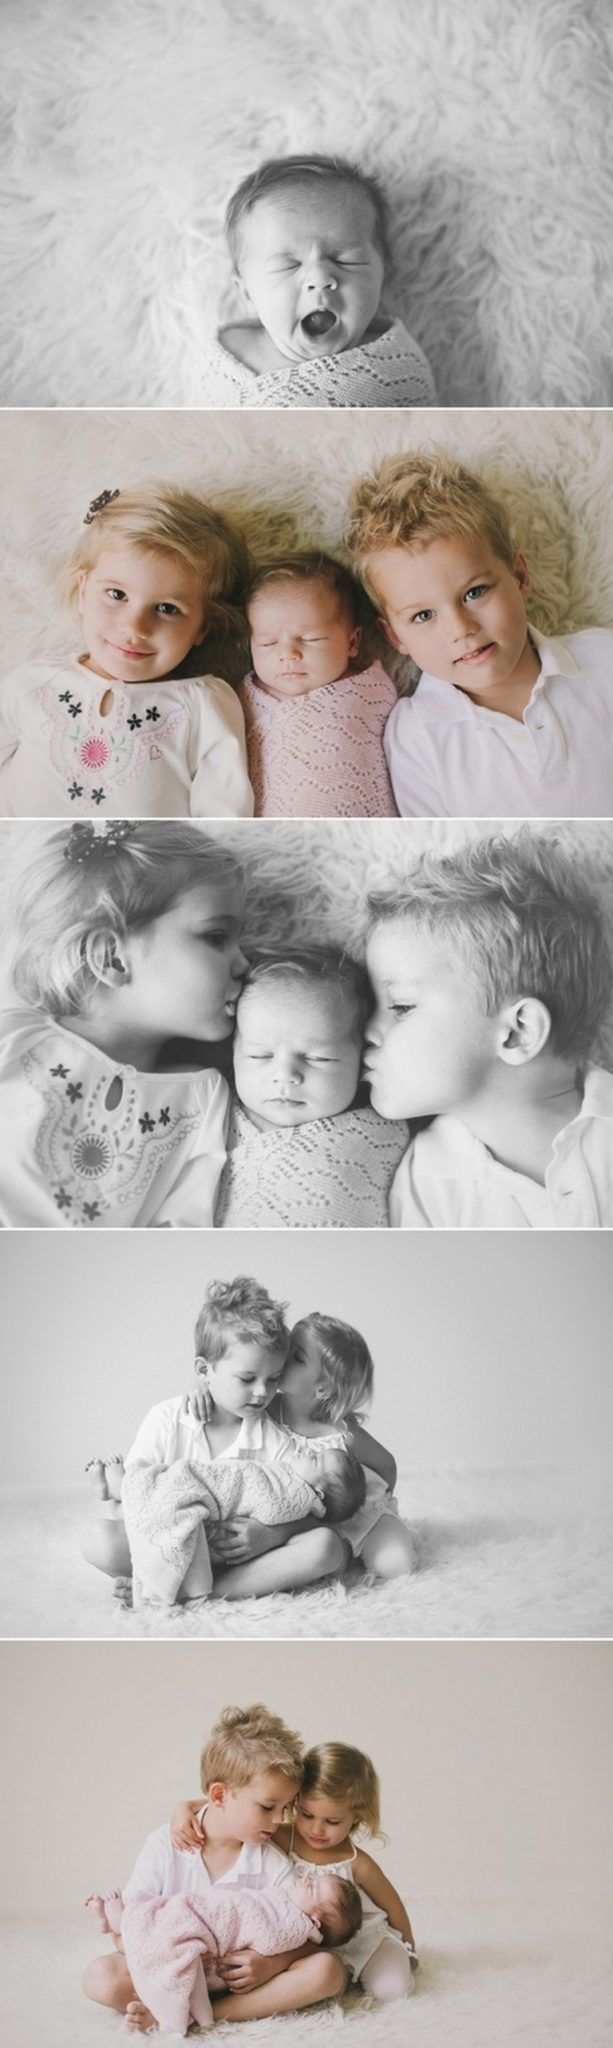 Adorable sibling photography ideas with sister, new baby 31